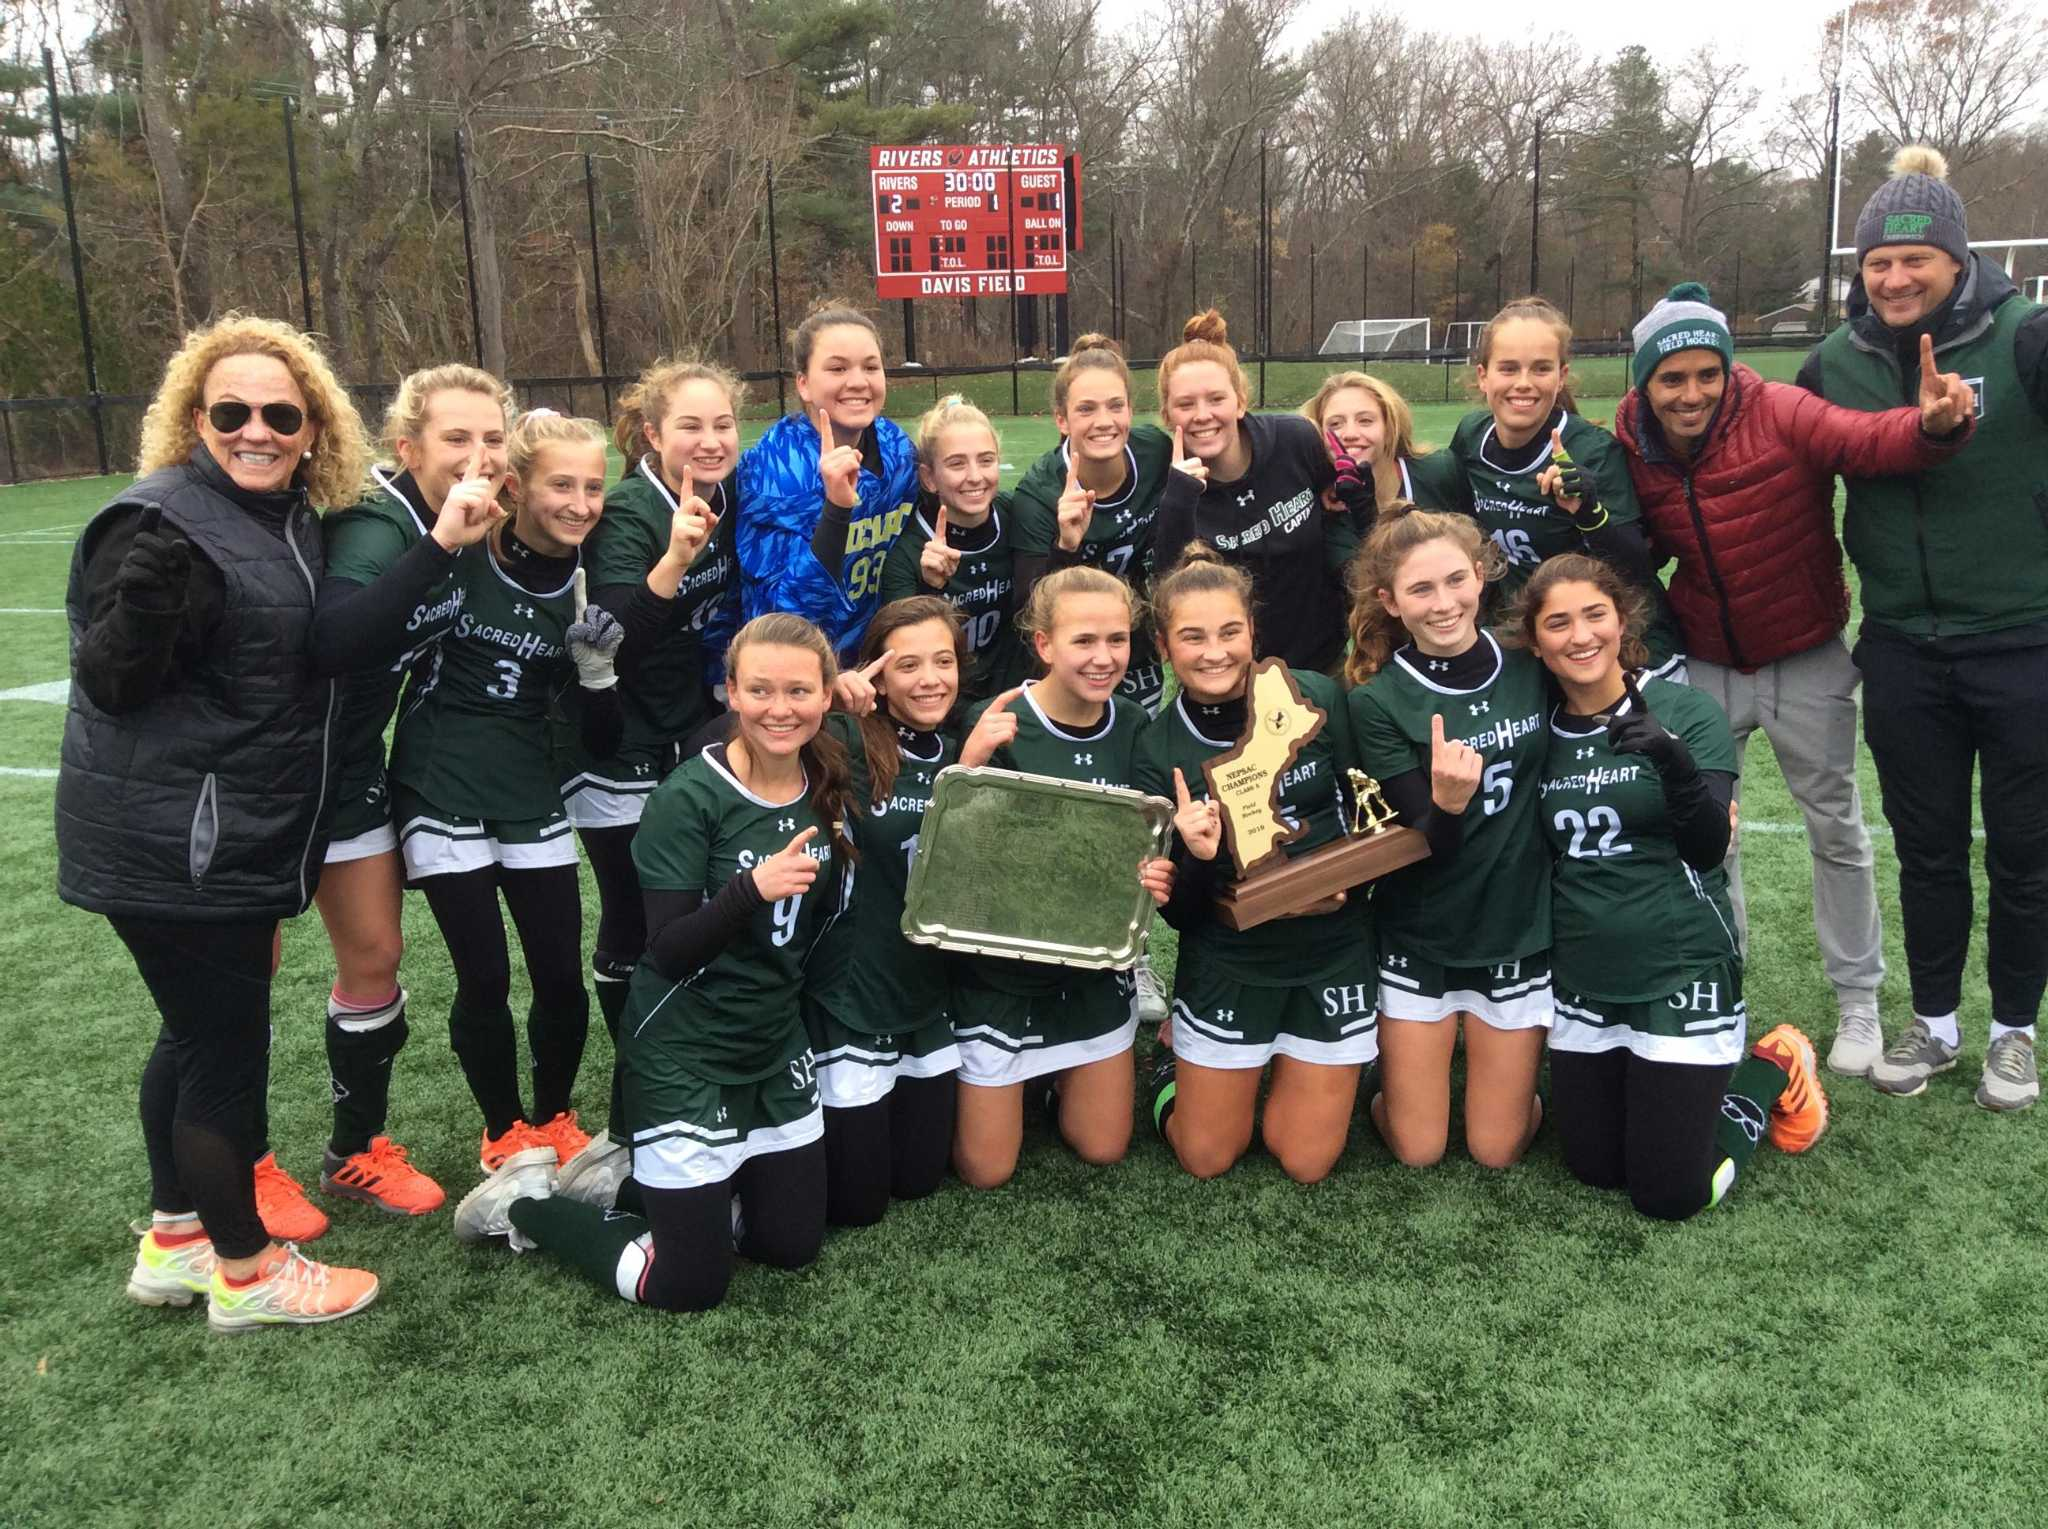 Sacred Heart field hockey team tops Tabor Academy for the NEPSAC Class A title - Greenwich Time